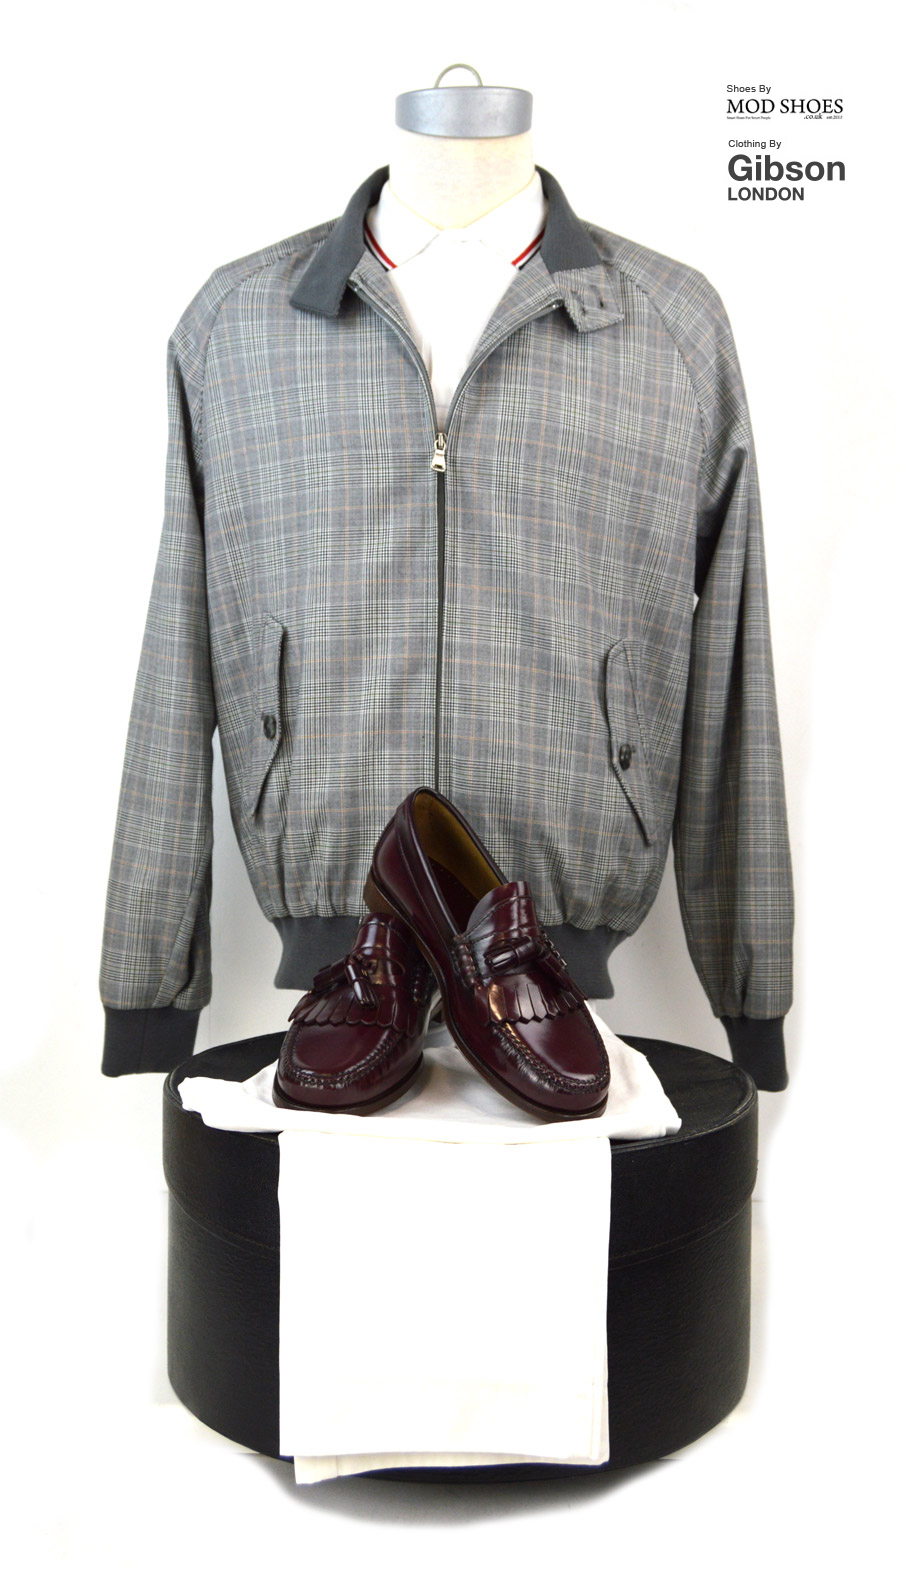 Modshoes-Oxblood-dukess-with-Prince-of-Wales-Harrington-from-Gibson-Clothes